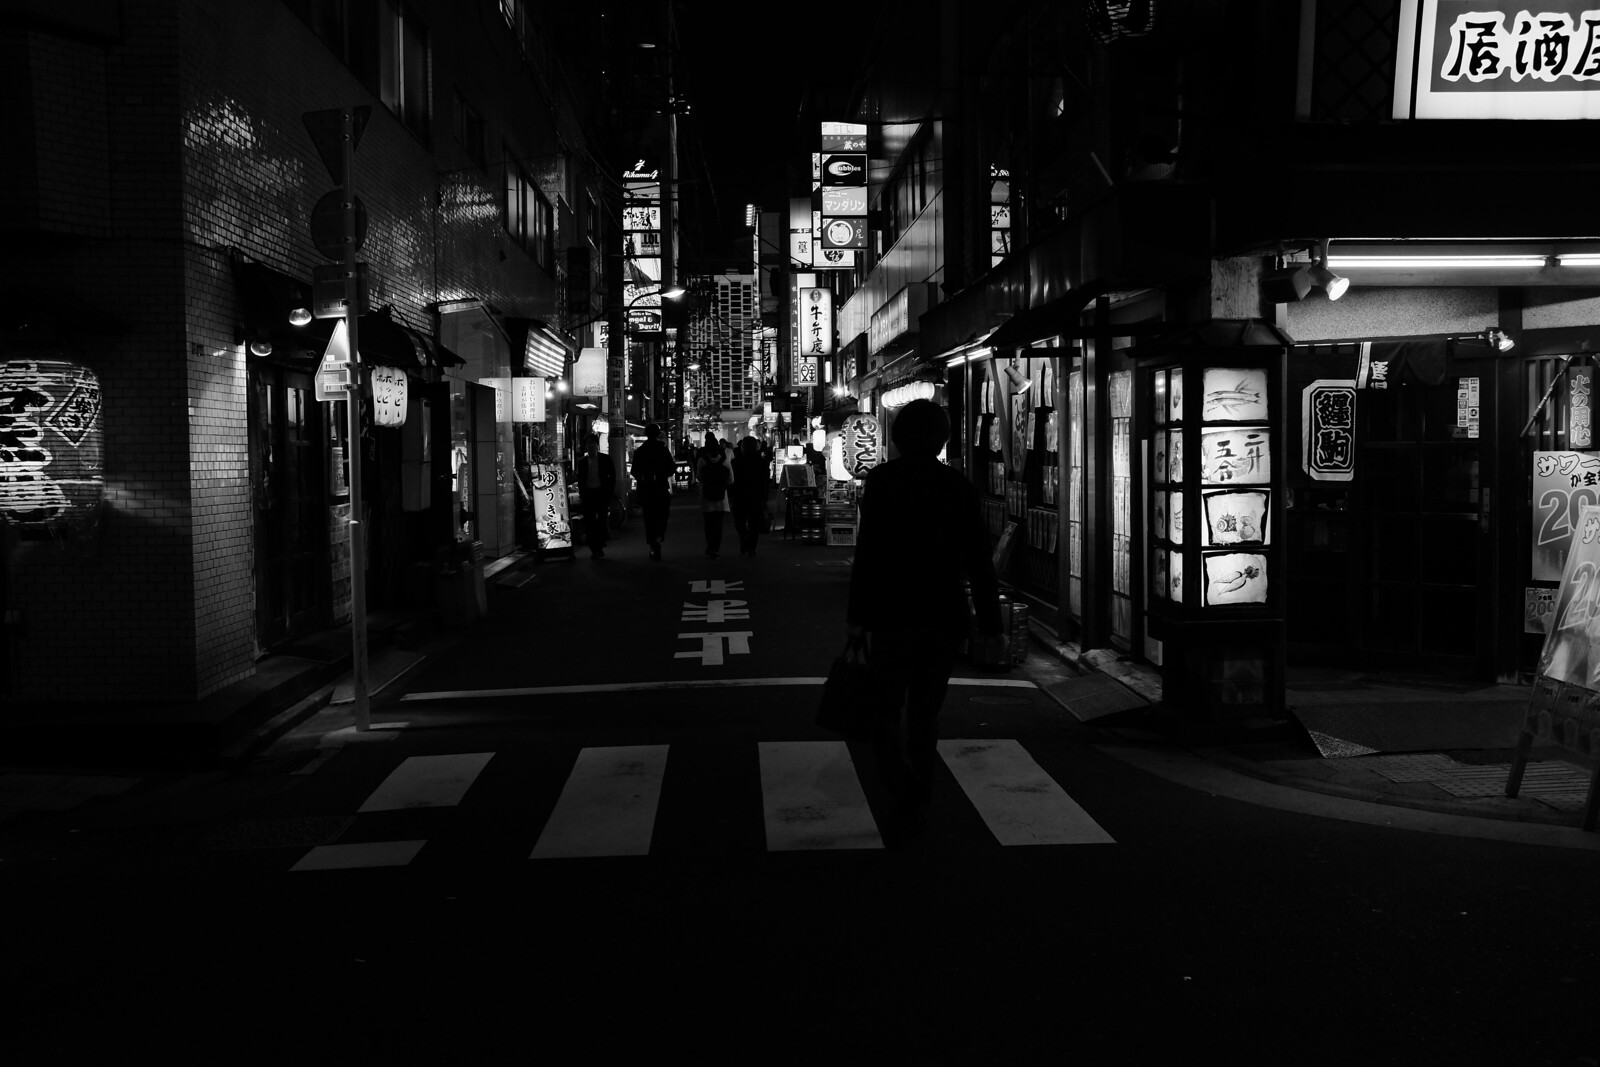 The night Shinbashi in Tokyo, Japan.